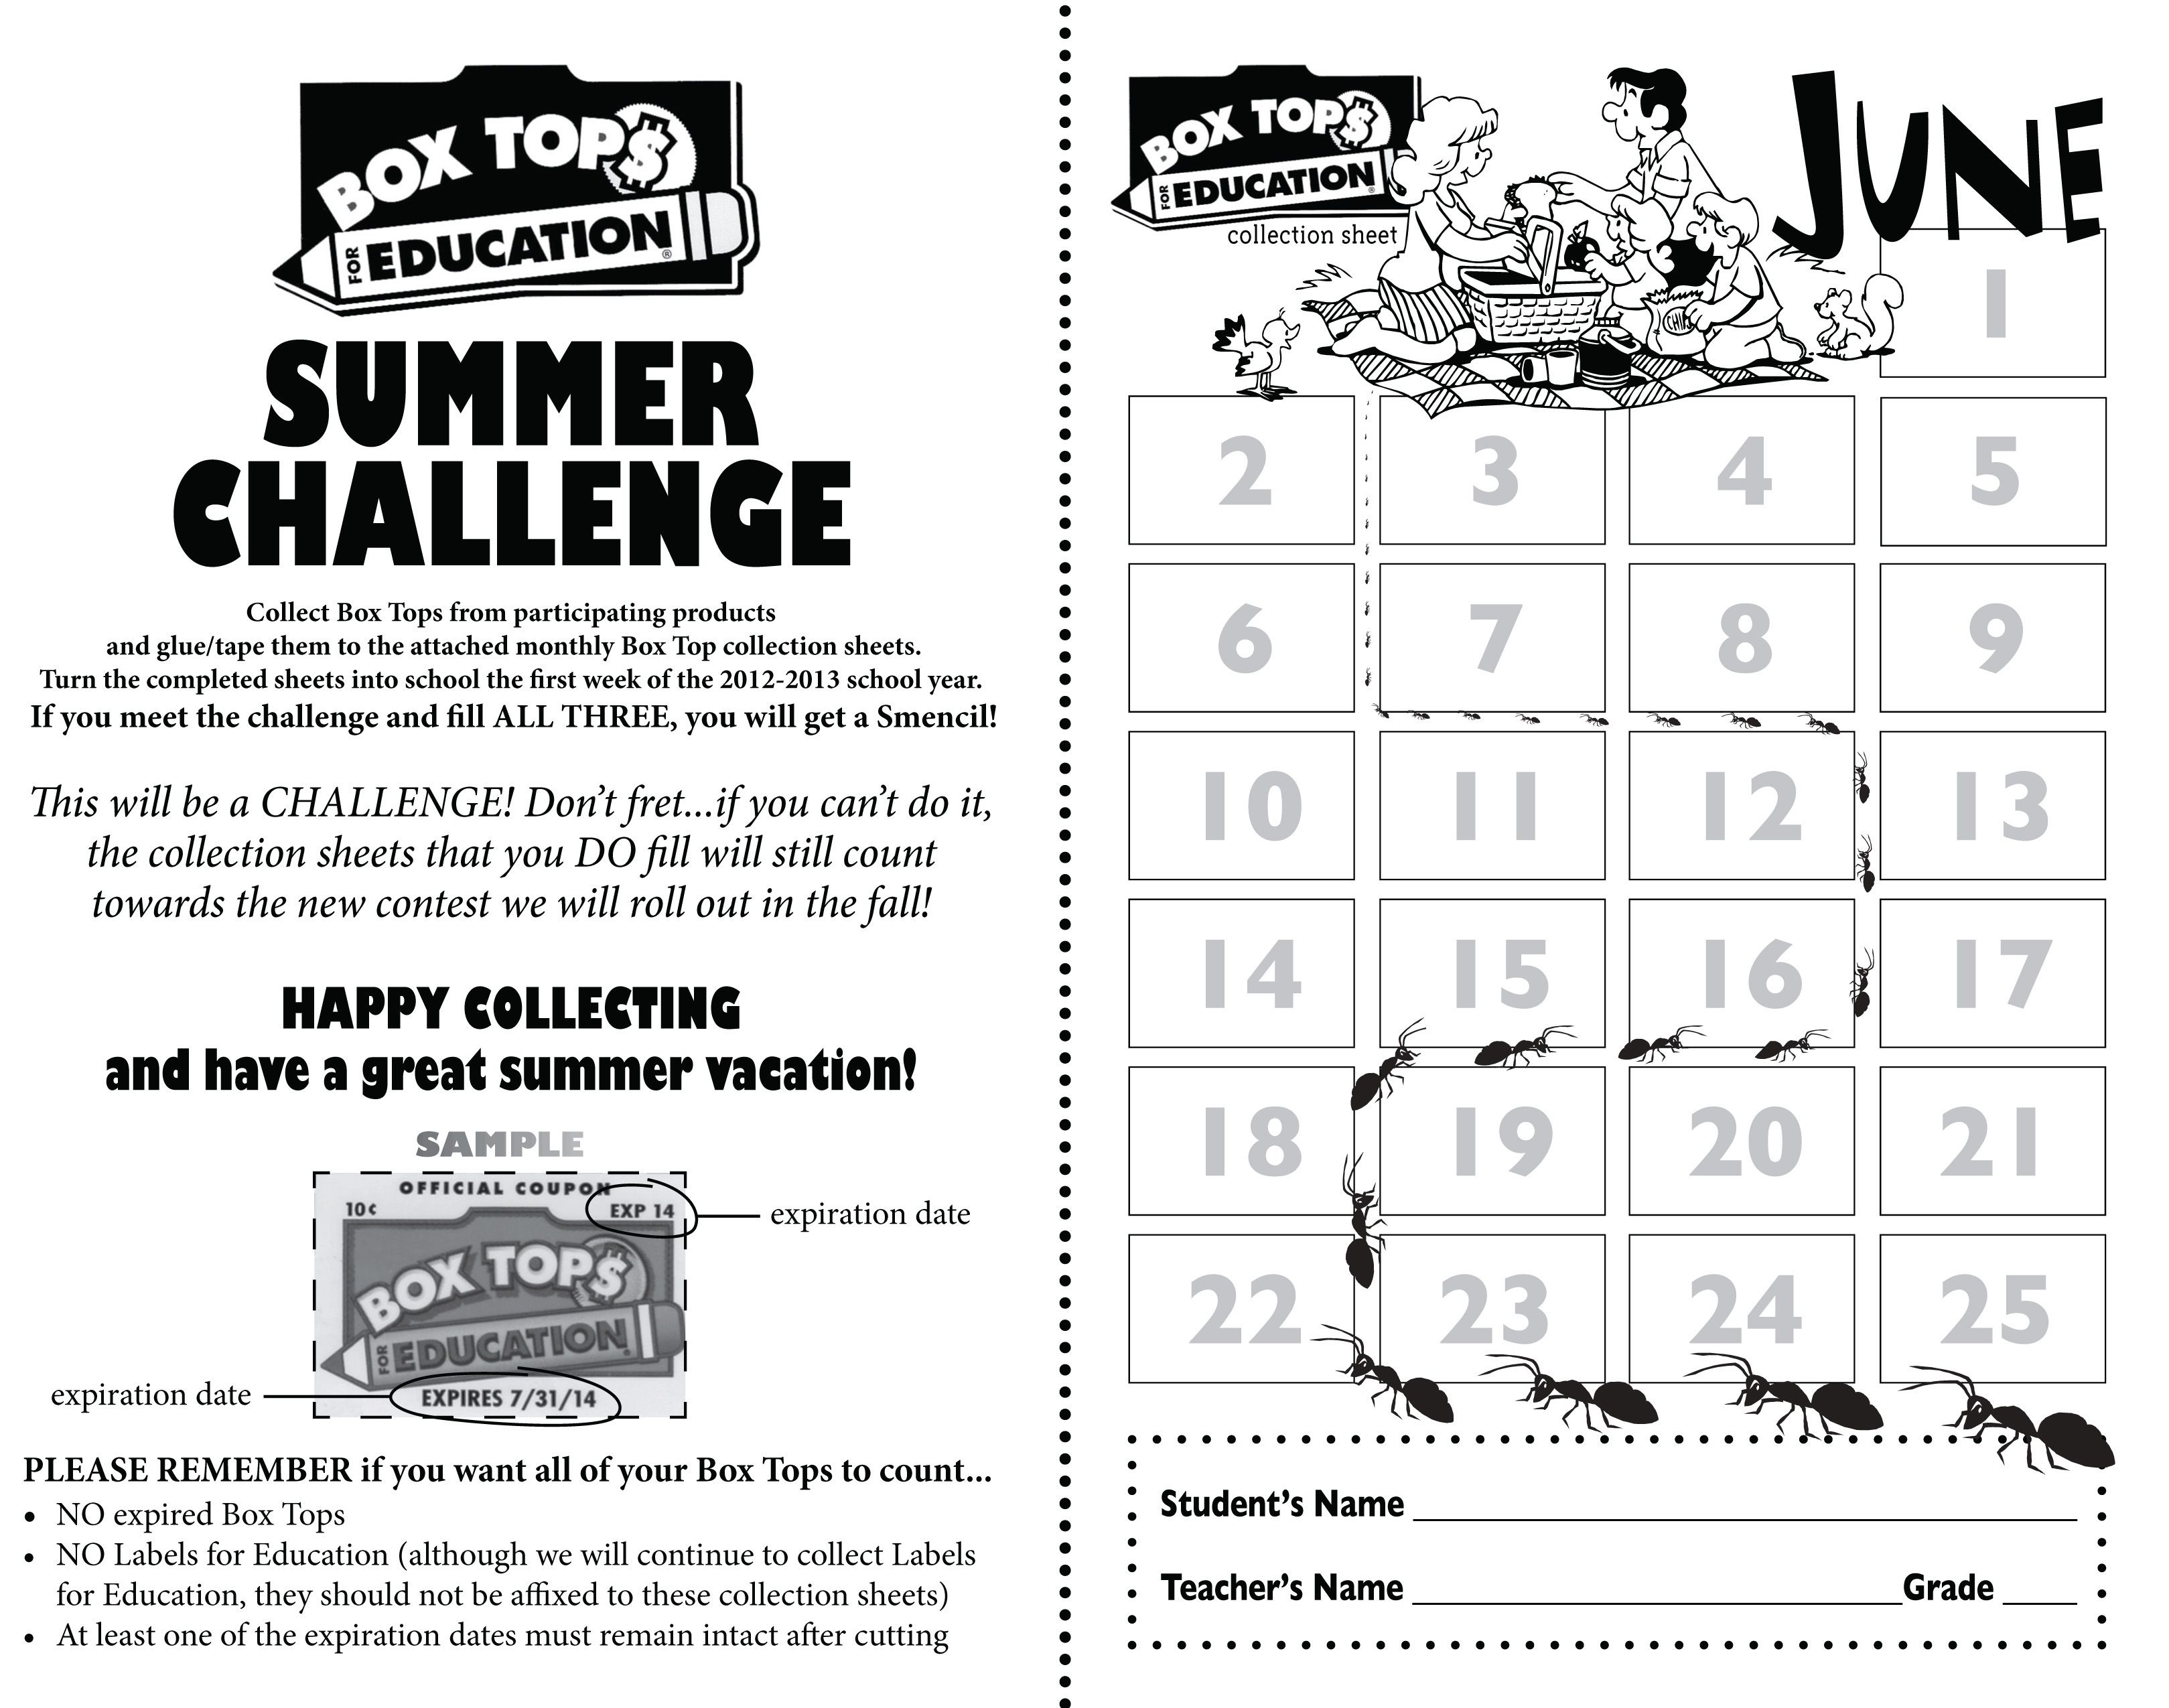 Great Summer Collection Sheet Box Tops For Education